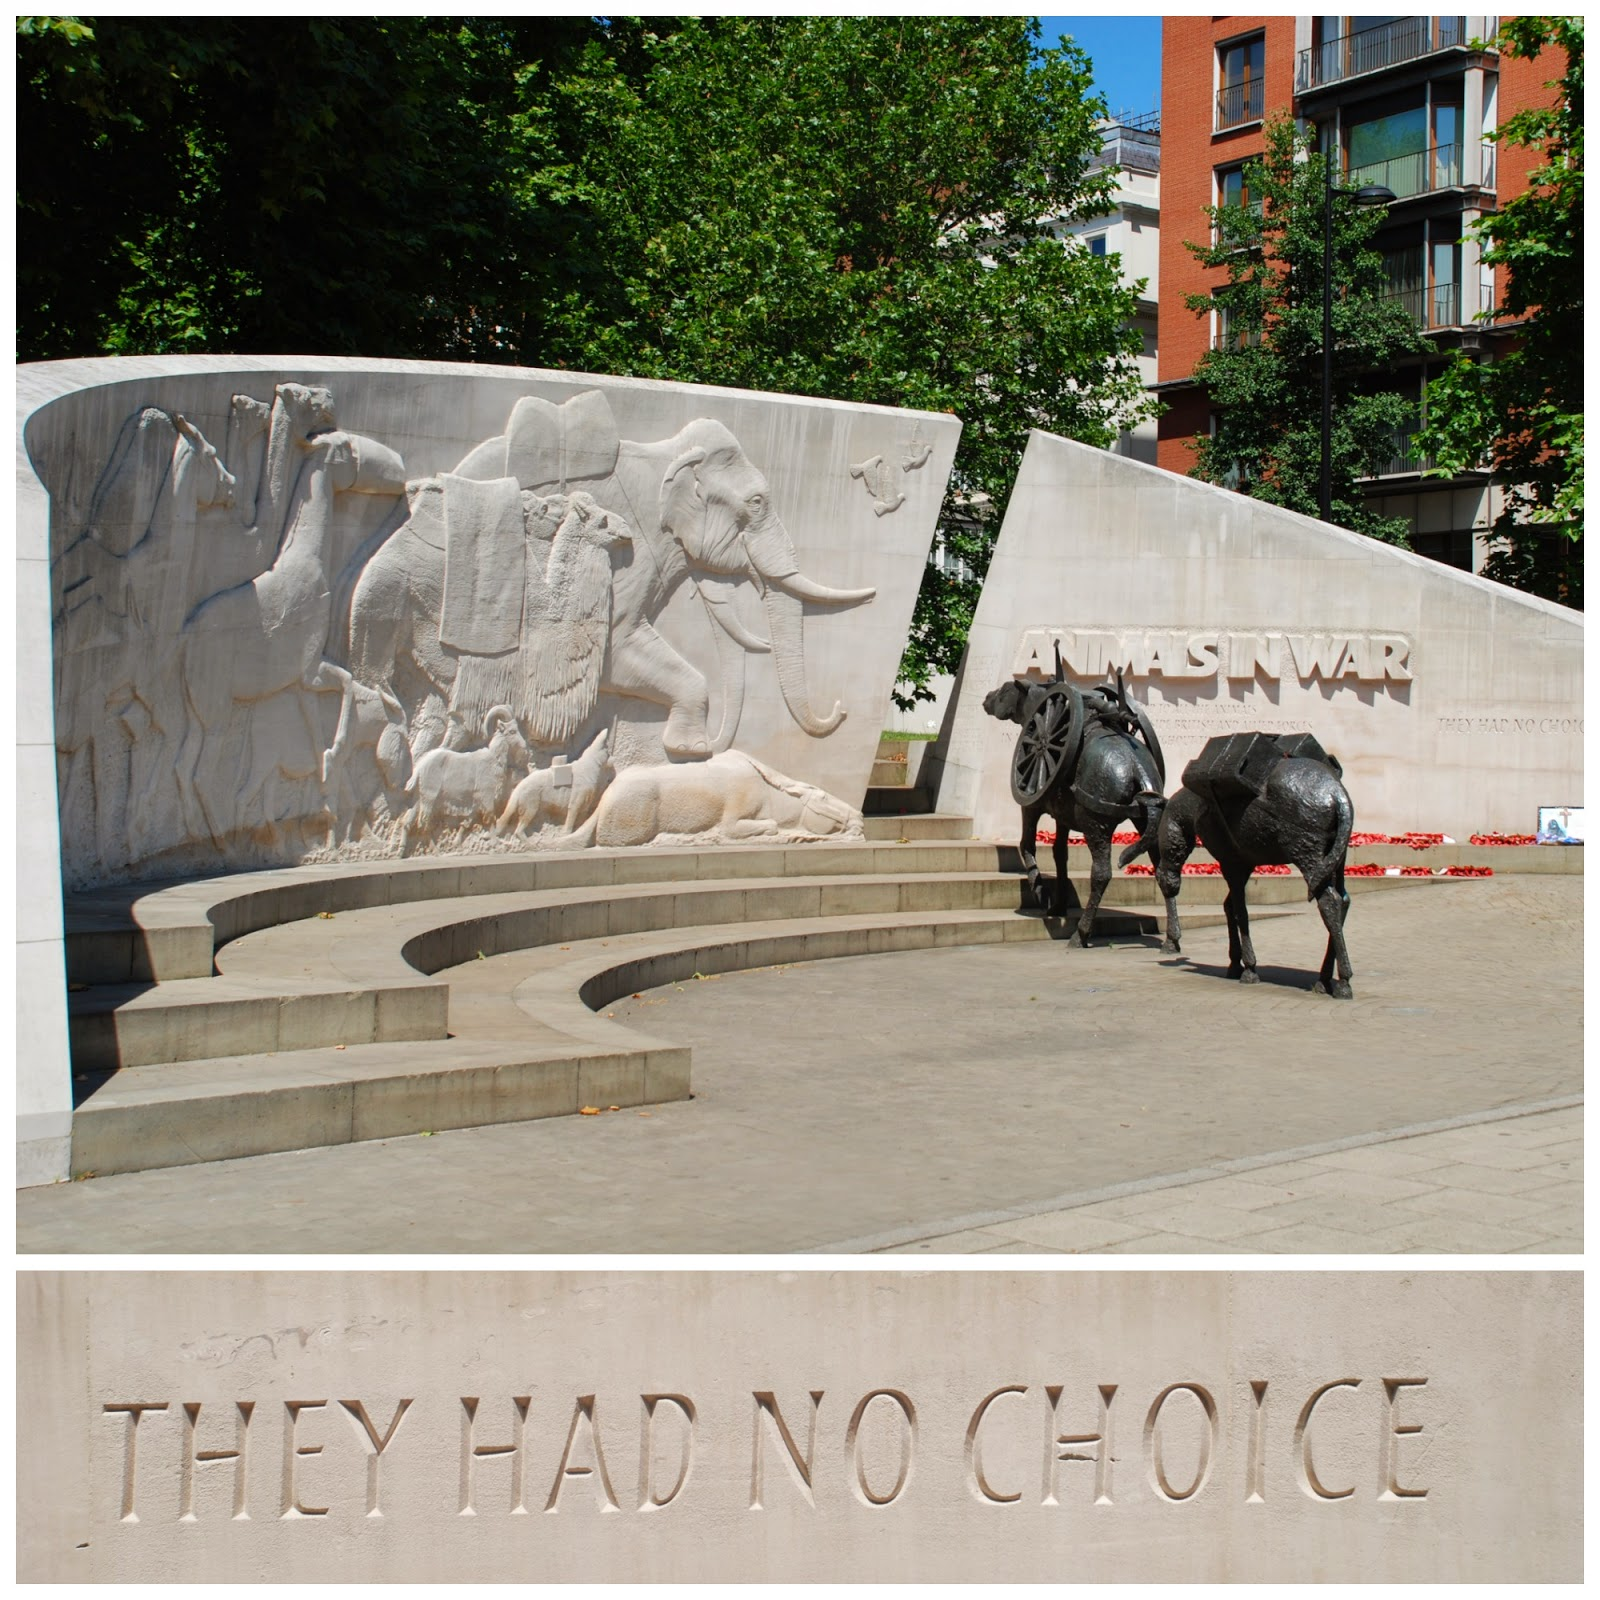 Animals in War Memorial, Park Lane, London